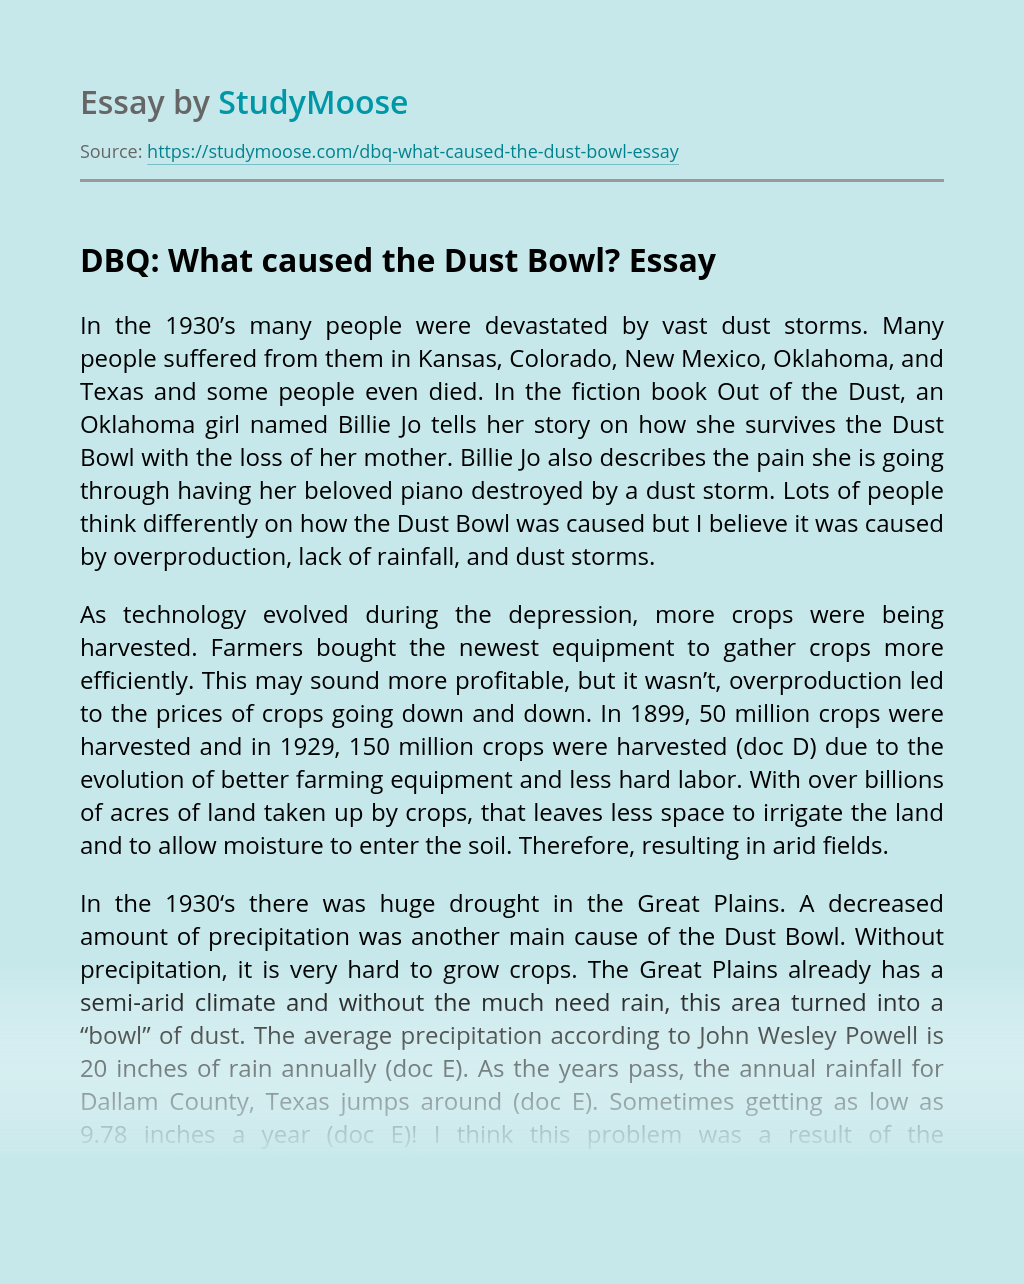 DBQ: What caused the Dust Bowl?